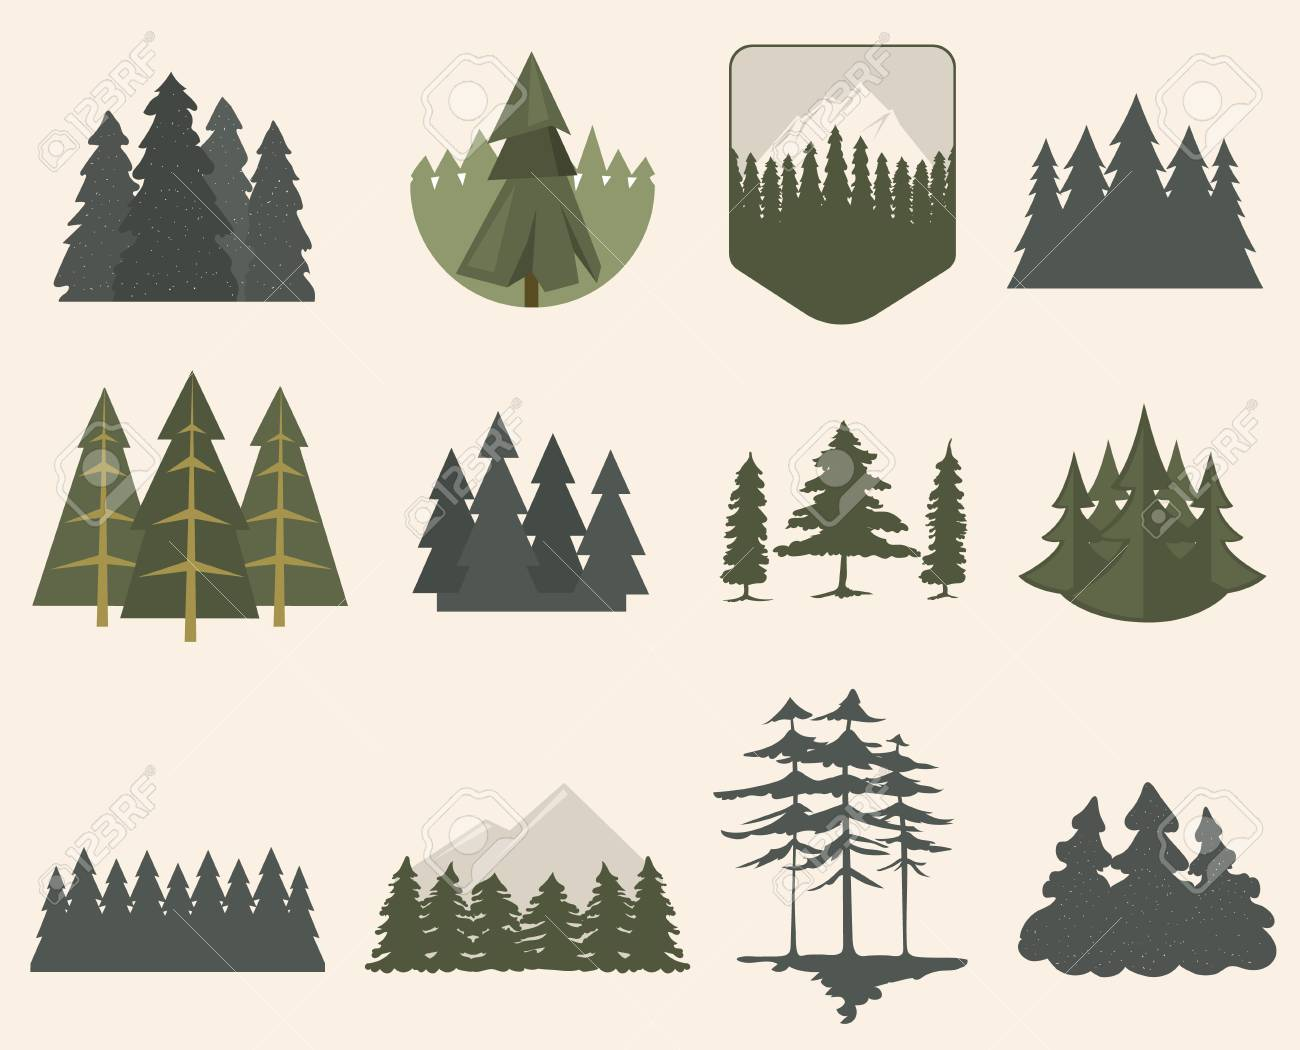 Illustration with fir trees set isolated. Pine plant wood branch natural landscape element. Trunk environment deciduous abstract vector. Big forest growth seasonal object. - 66843032